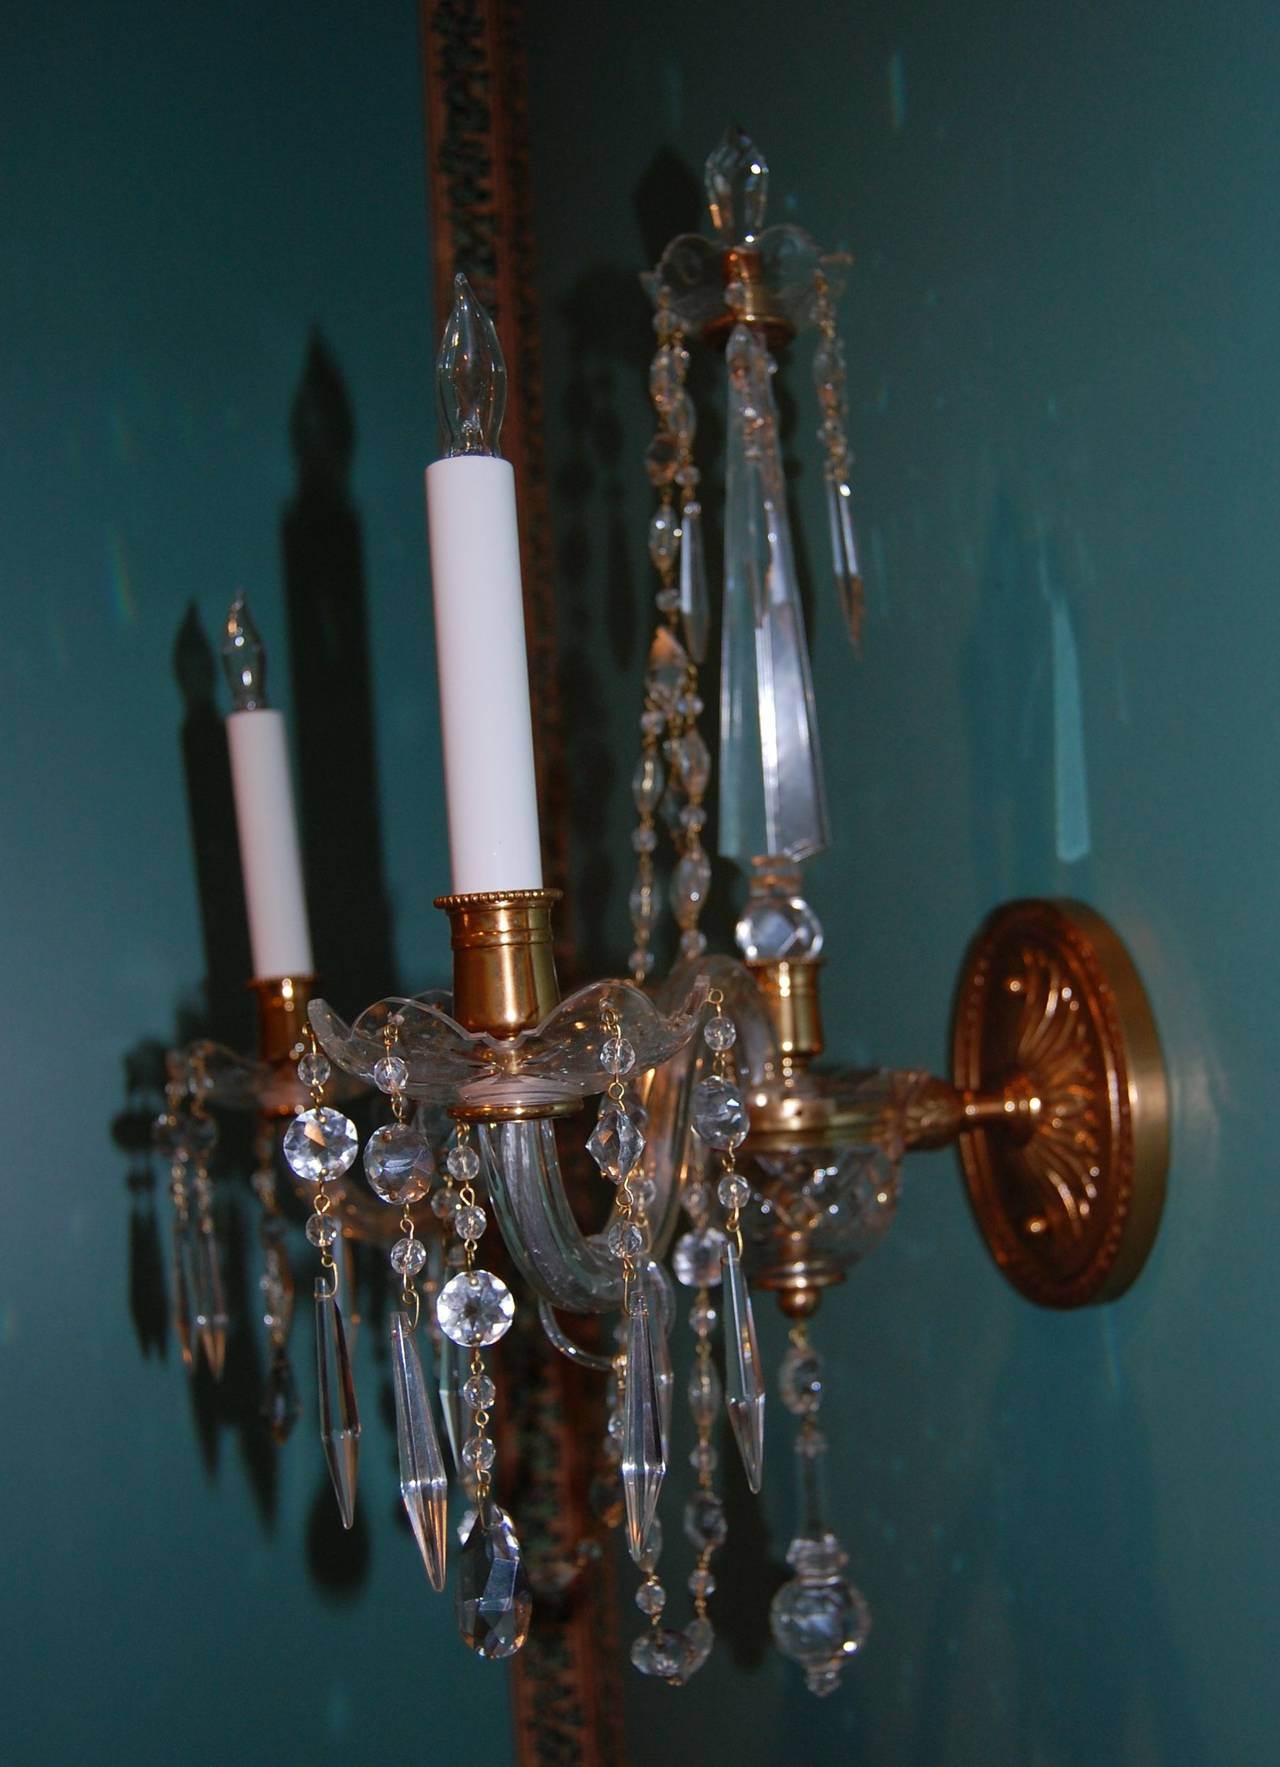 Pair of Crystal Two-Light Wall Sconces with Crystal Drops, Waterford Type, 1920s at 1stdibs